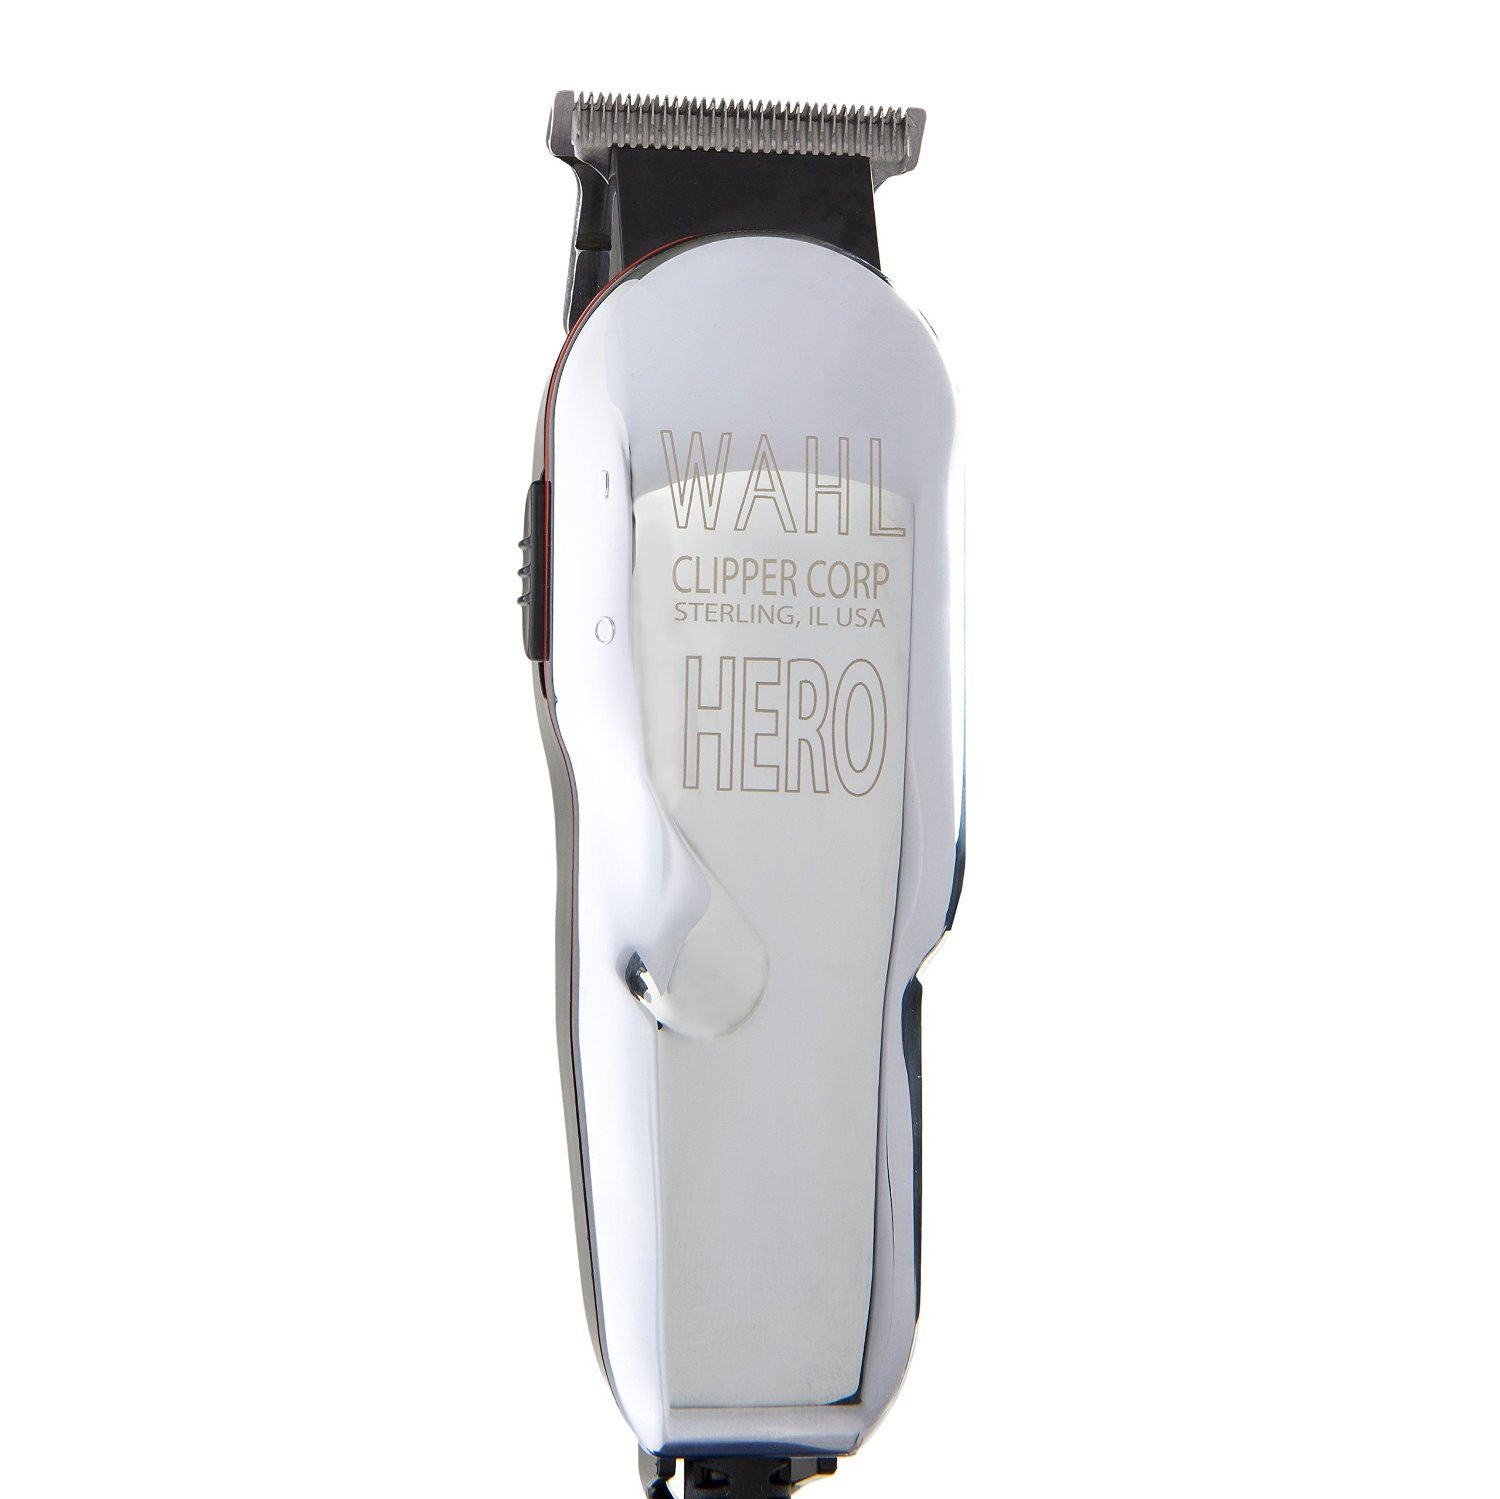 Wahl MINIATURE LIMITED ''VINTAGE EDITION'' T-Blade Hair Trimmer with BONUS FREE Oldspice Body Spray and Comb Included